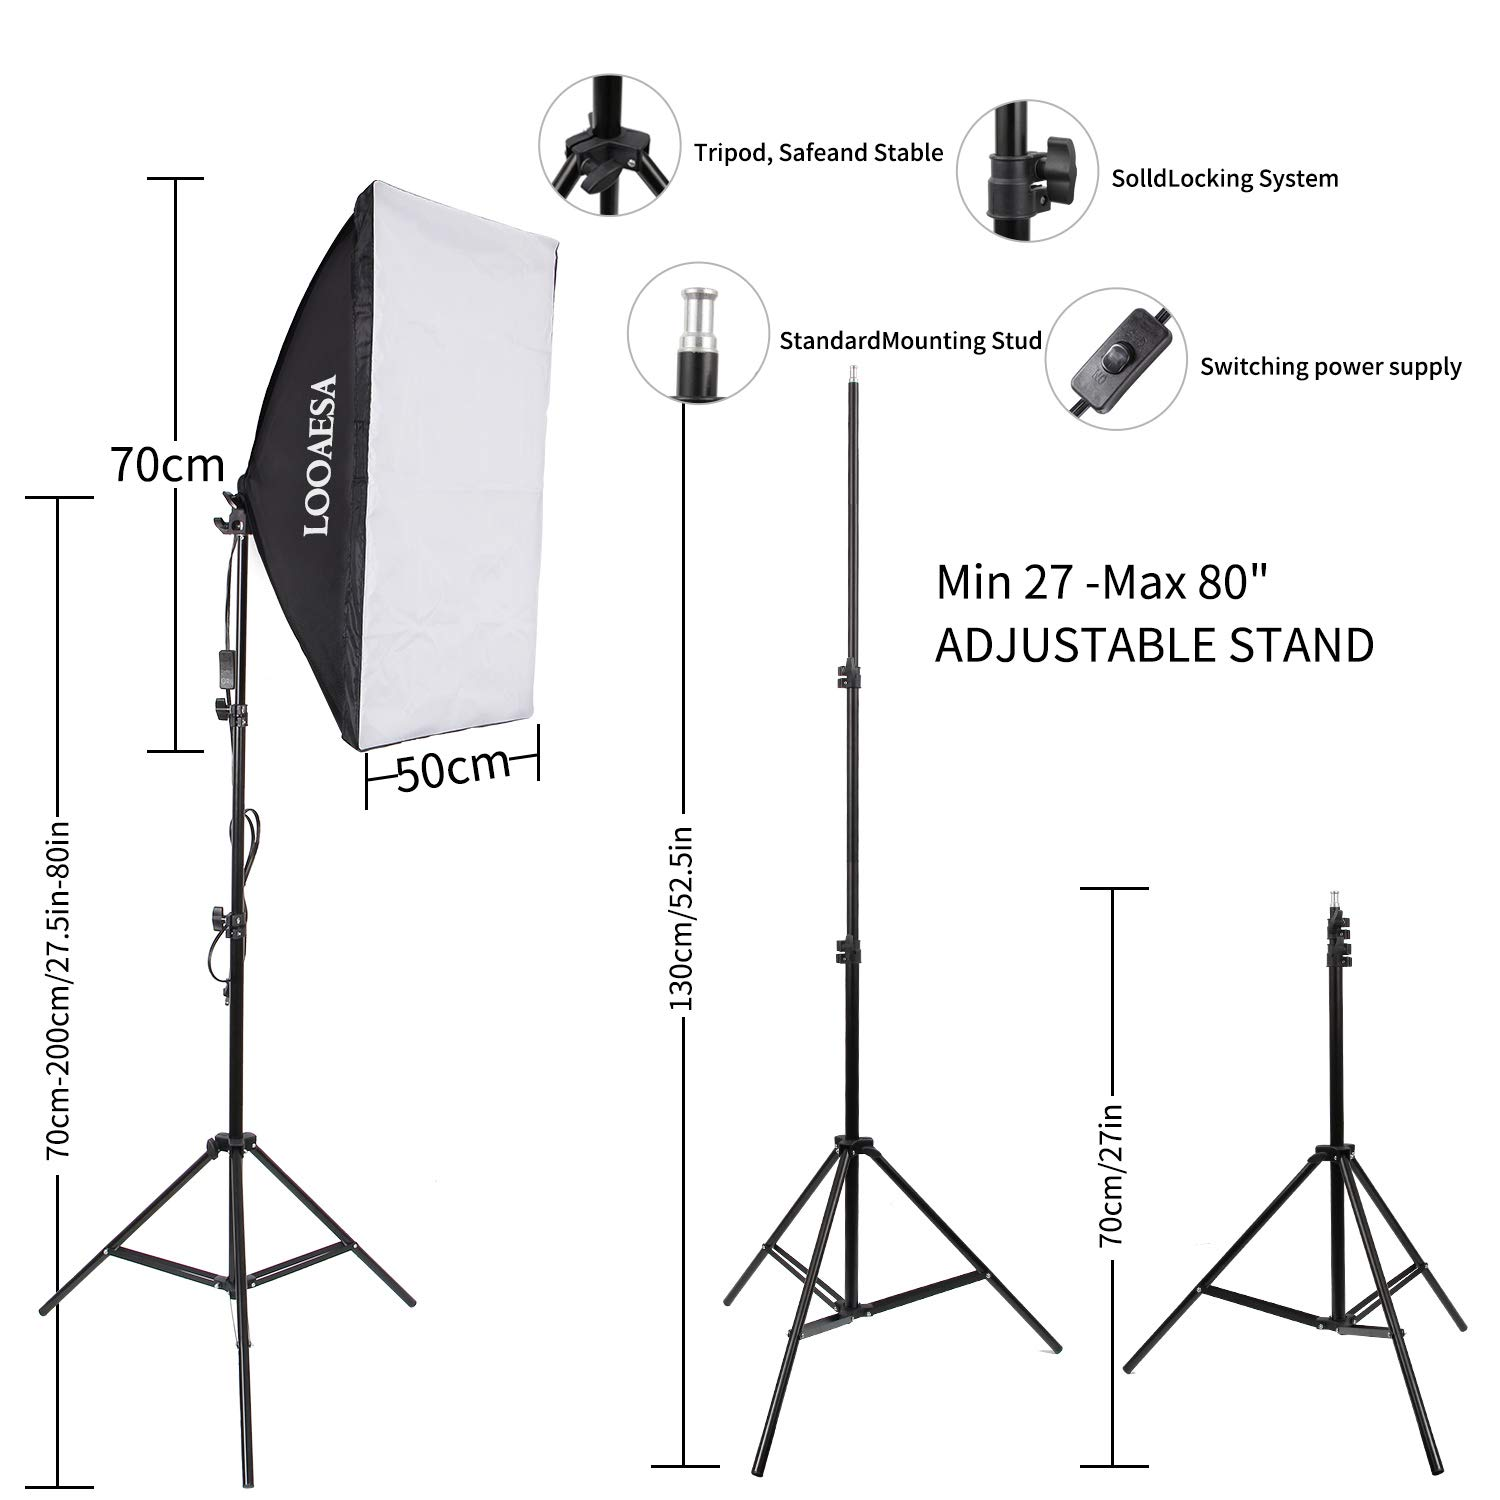 1350W Photography Lighting Softbox Lighting Kit Continuous Photo Video Lighting System with Sandbag and 5500K Bulb 20''X28'' Professional Studio Lights Equipment for Youtube Filming Portraits by LOOAESA by LOOAESA (Image #3)